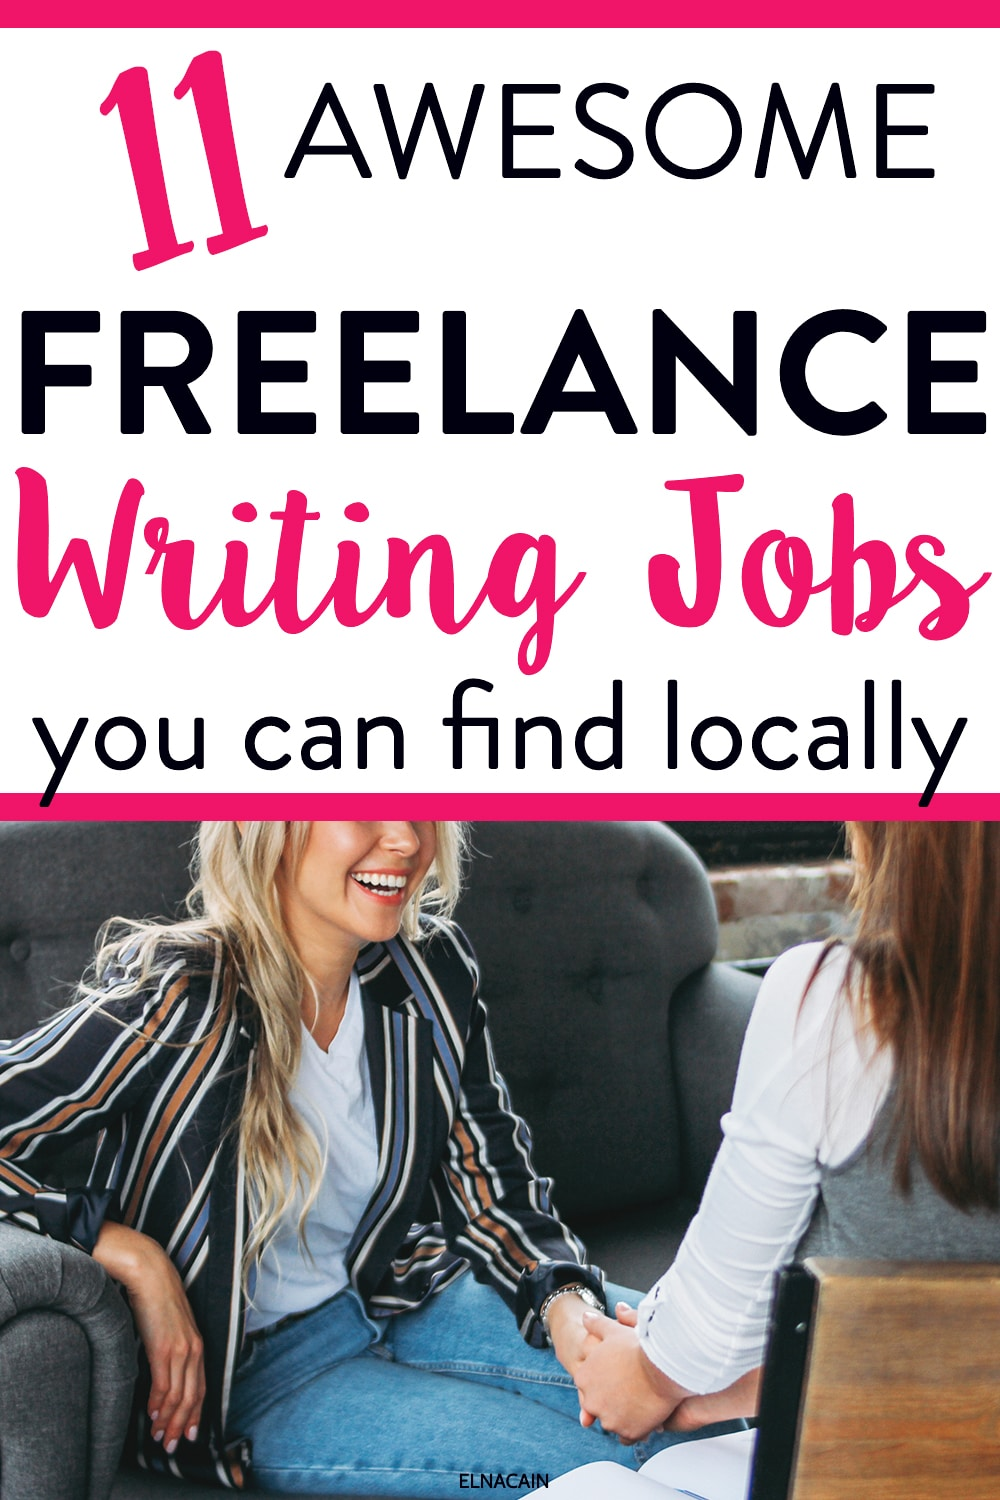 Writing jobs near me